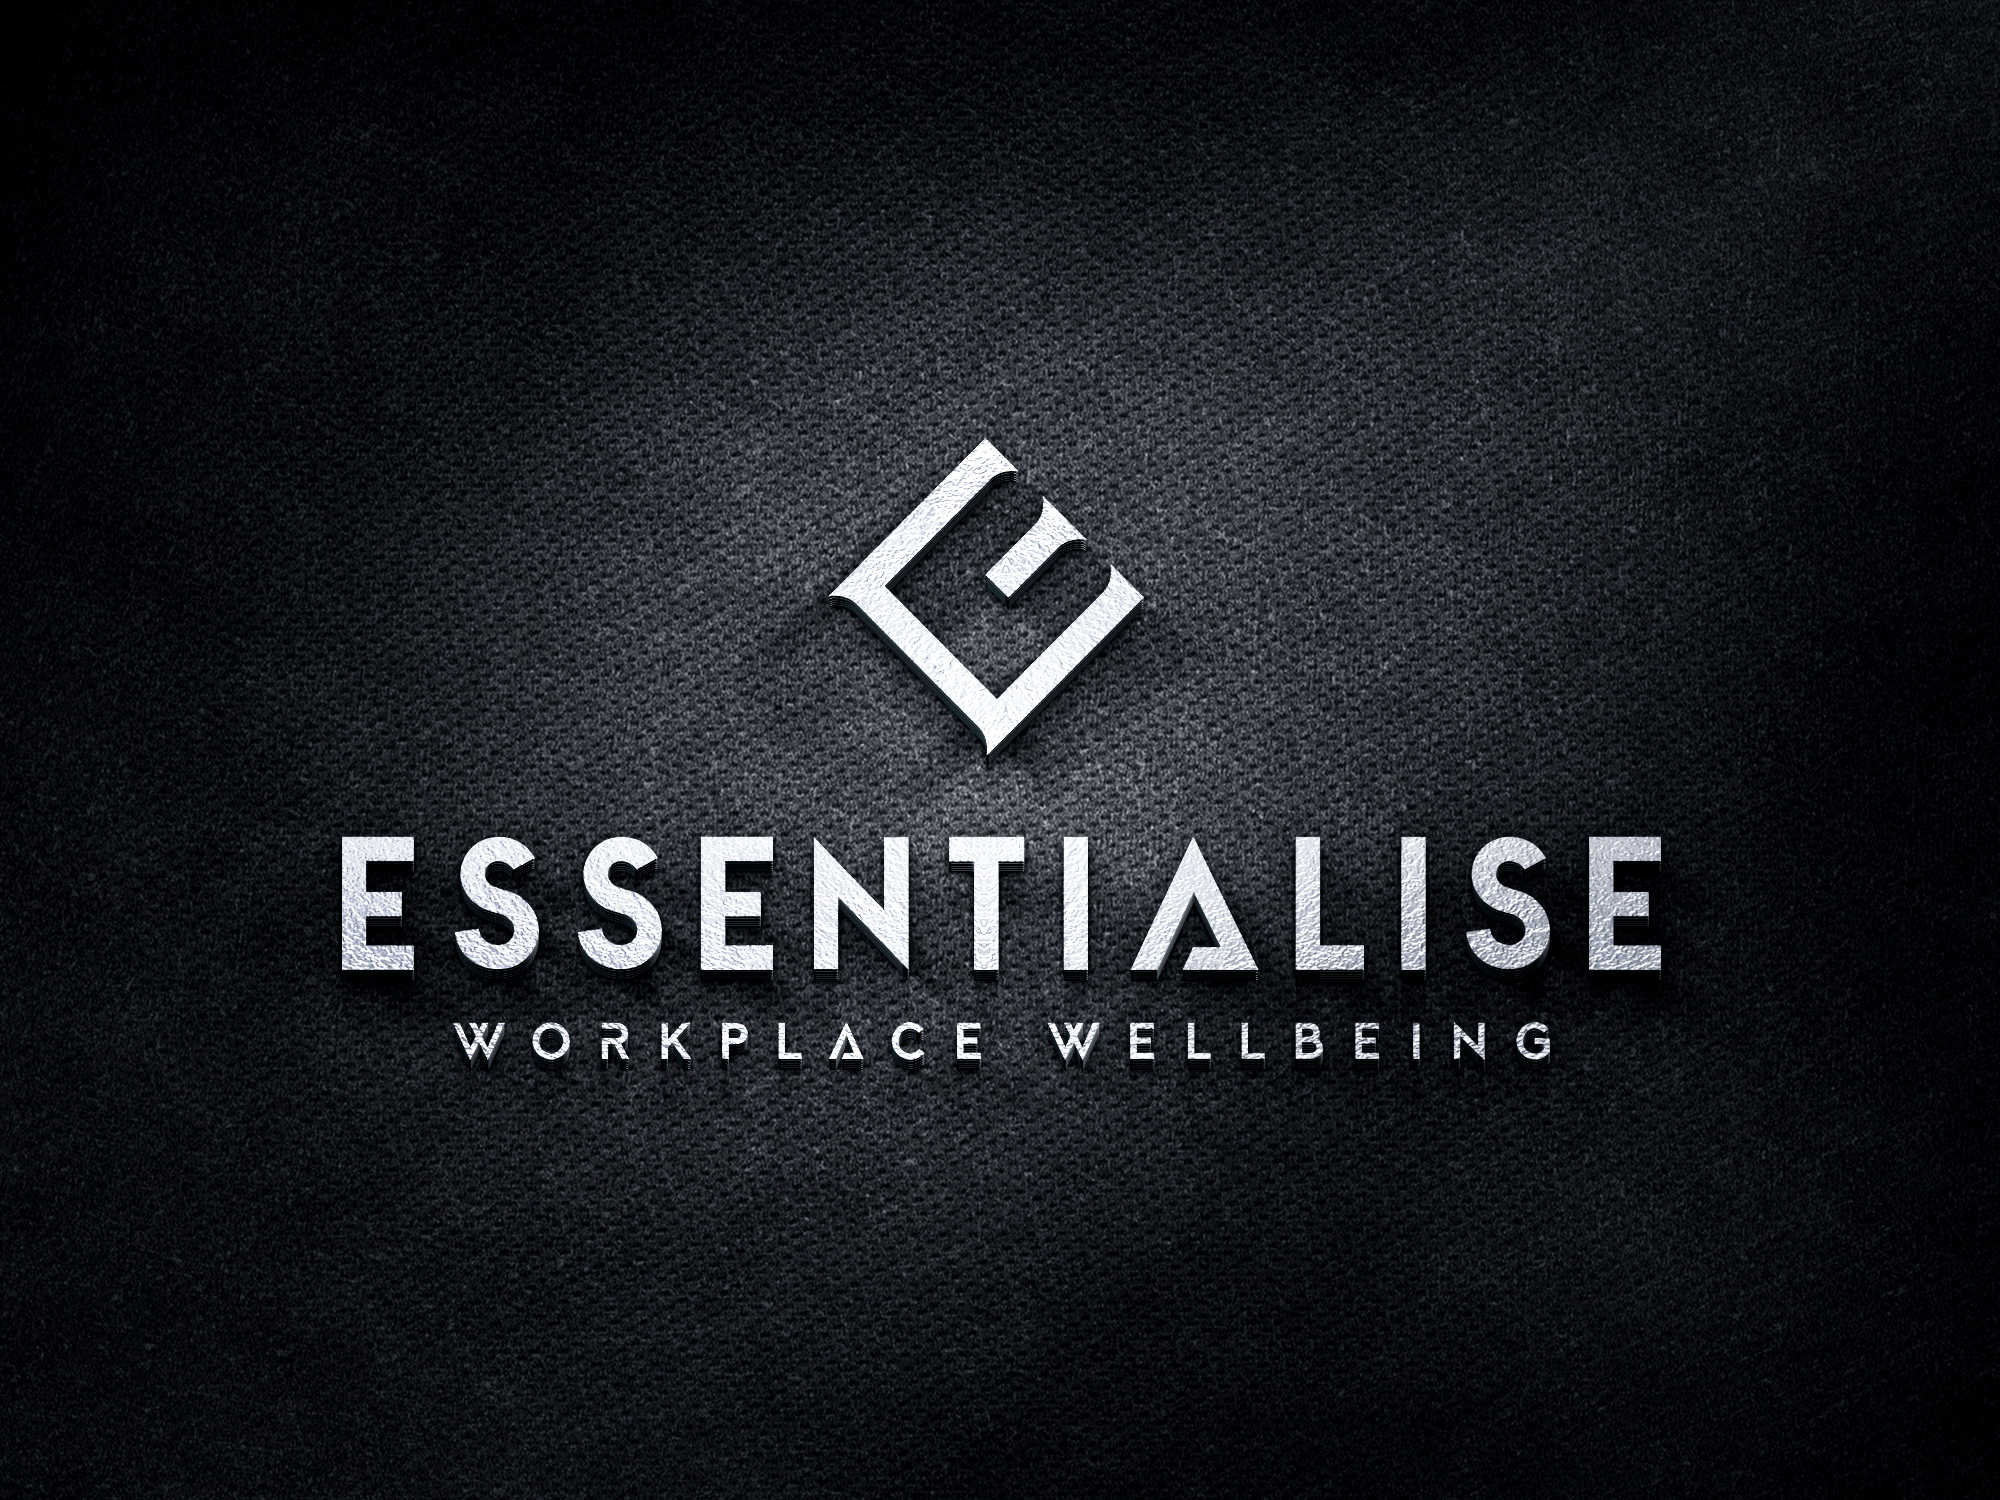 Essentialise Launch Online Workshops in Response to COVID-19